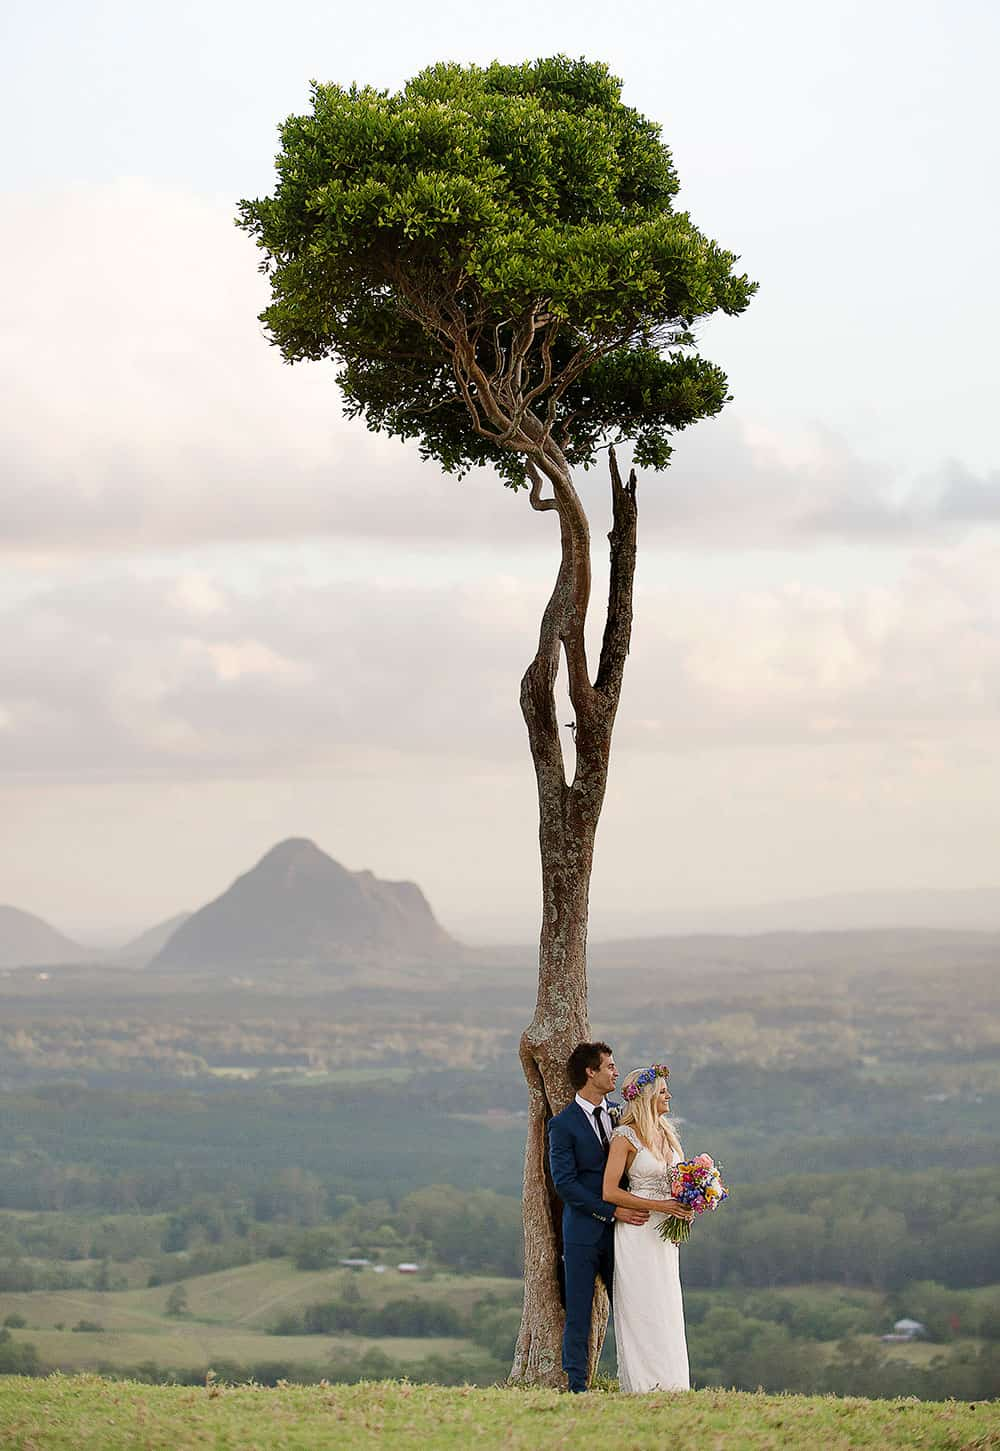 A bride and groom at One Tree Hill on the Sunshine Coast for their hinterland wedding by Christopher Thomas Photography.